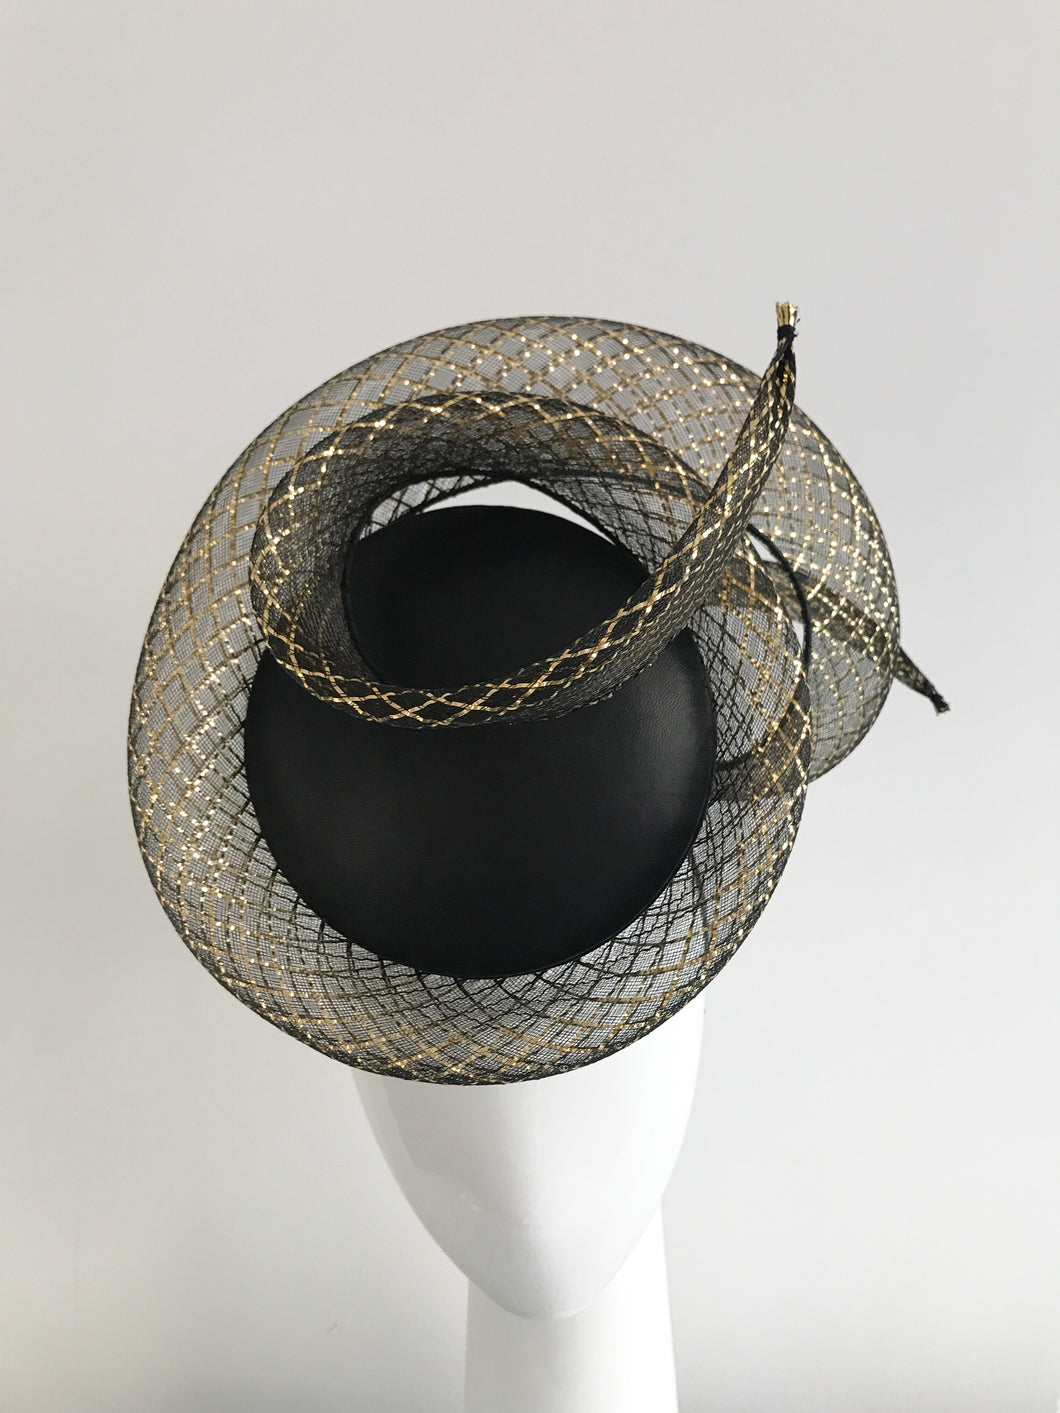 3D Percher Disc in Black Leather with Black and Gold Crinoline Swirl